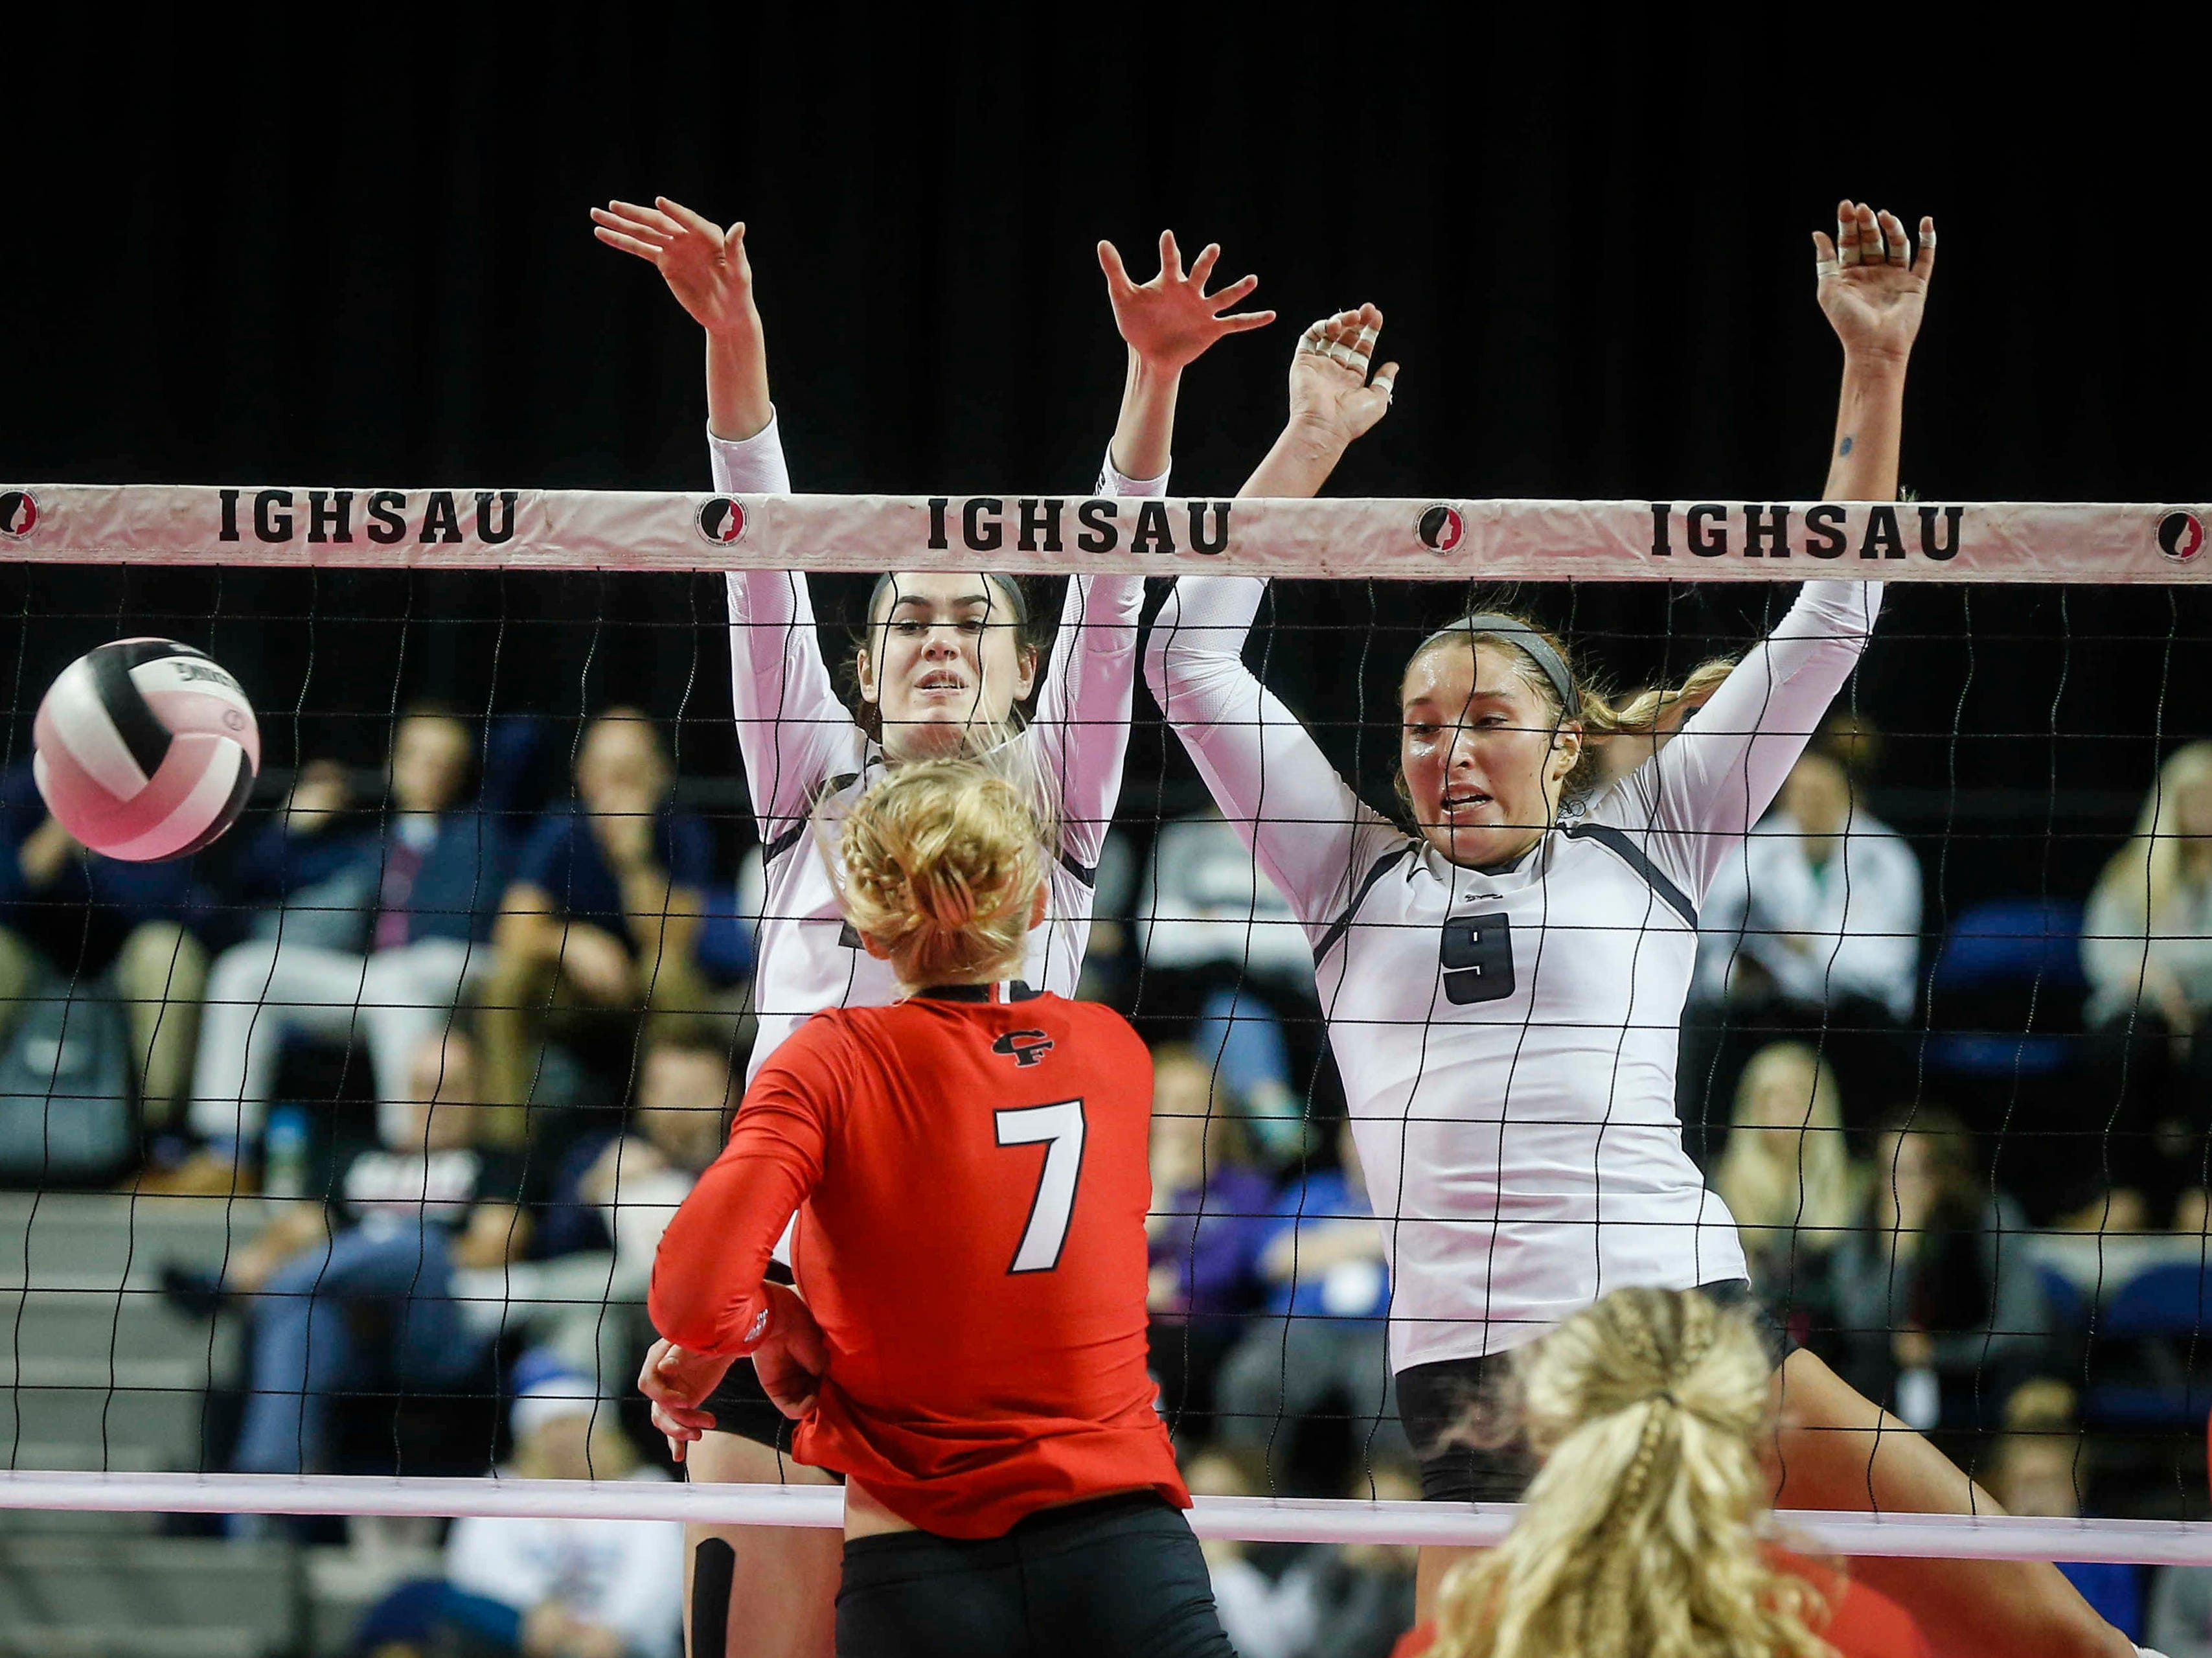 Ankeny Centennial's Megan Lively, left, and Kenna Sauer team up to stop a shot at the net against Cedar Falls during the Class 5A state volleyball tournament championship game on Friday, Nov. 9, 2018, in Cedar Rapids.